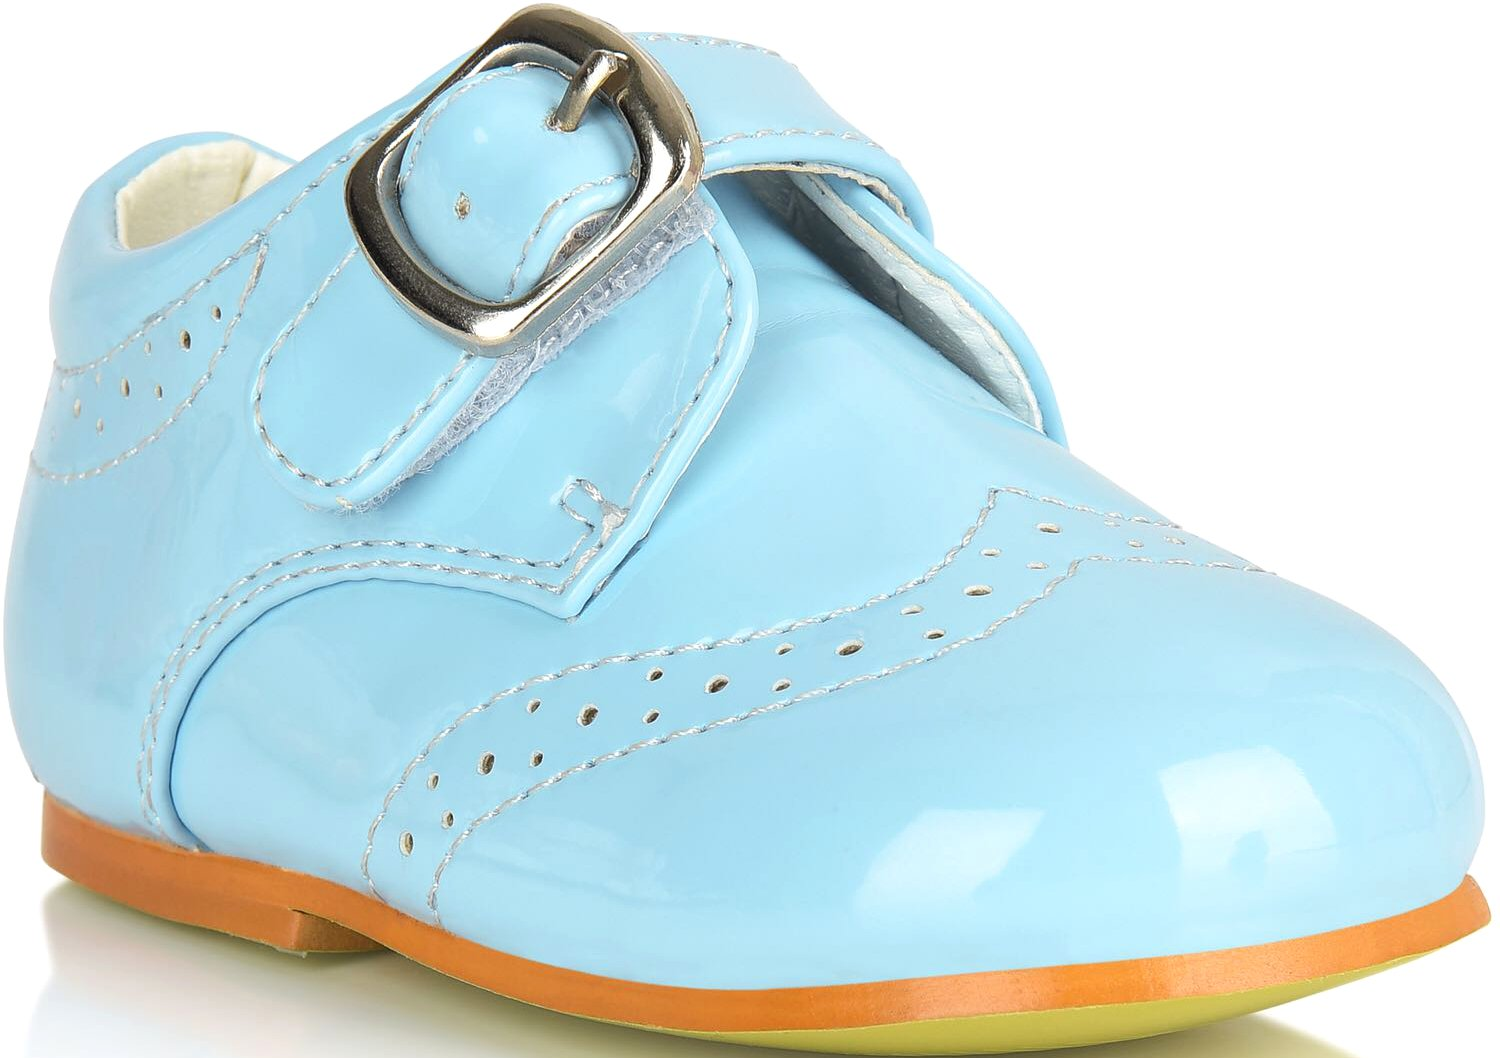 Boys Shoes For Weddings Formal White Smart Buckle Up Christening Size Party Kids Age Size 1 2 3 4 5 6 7 8 Years